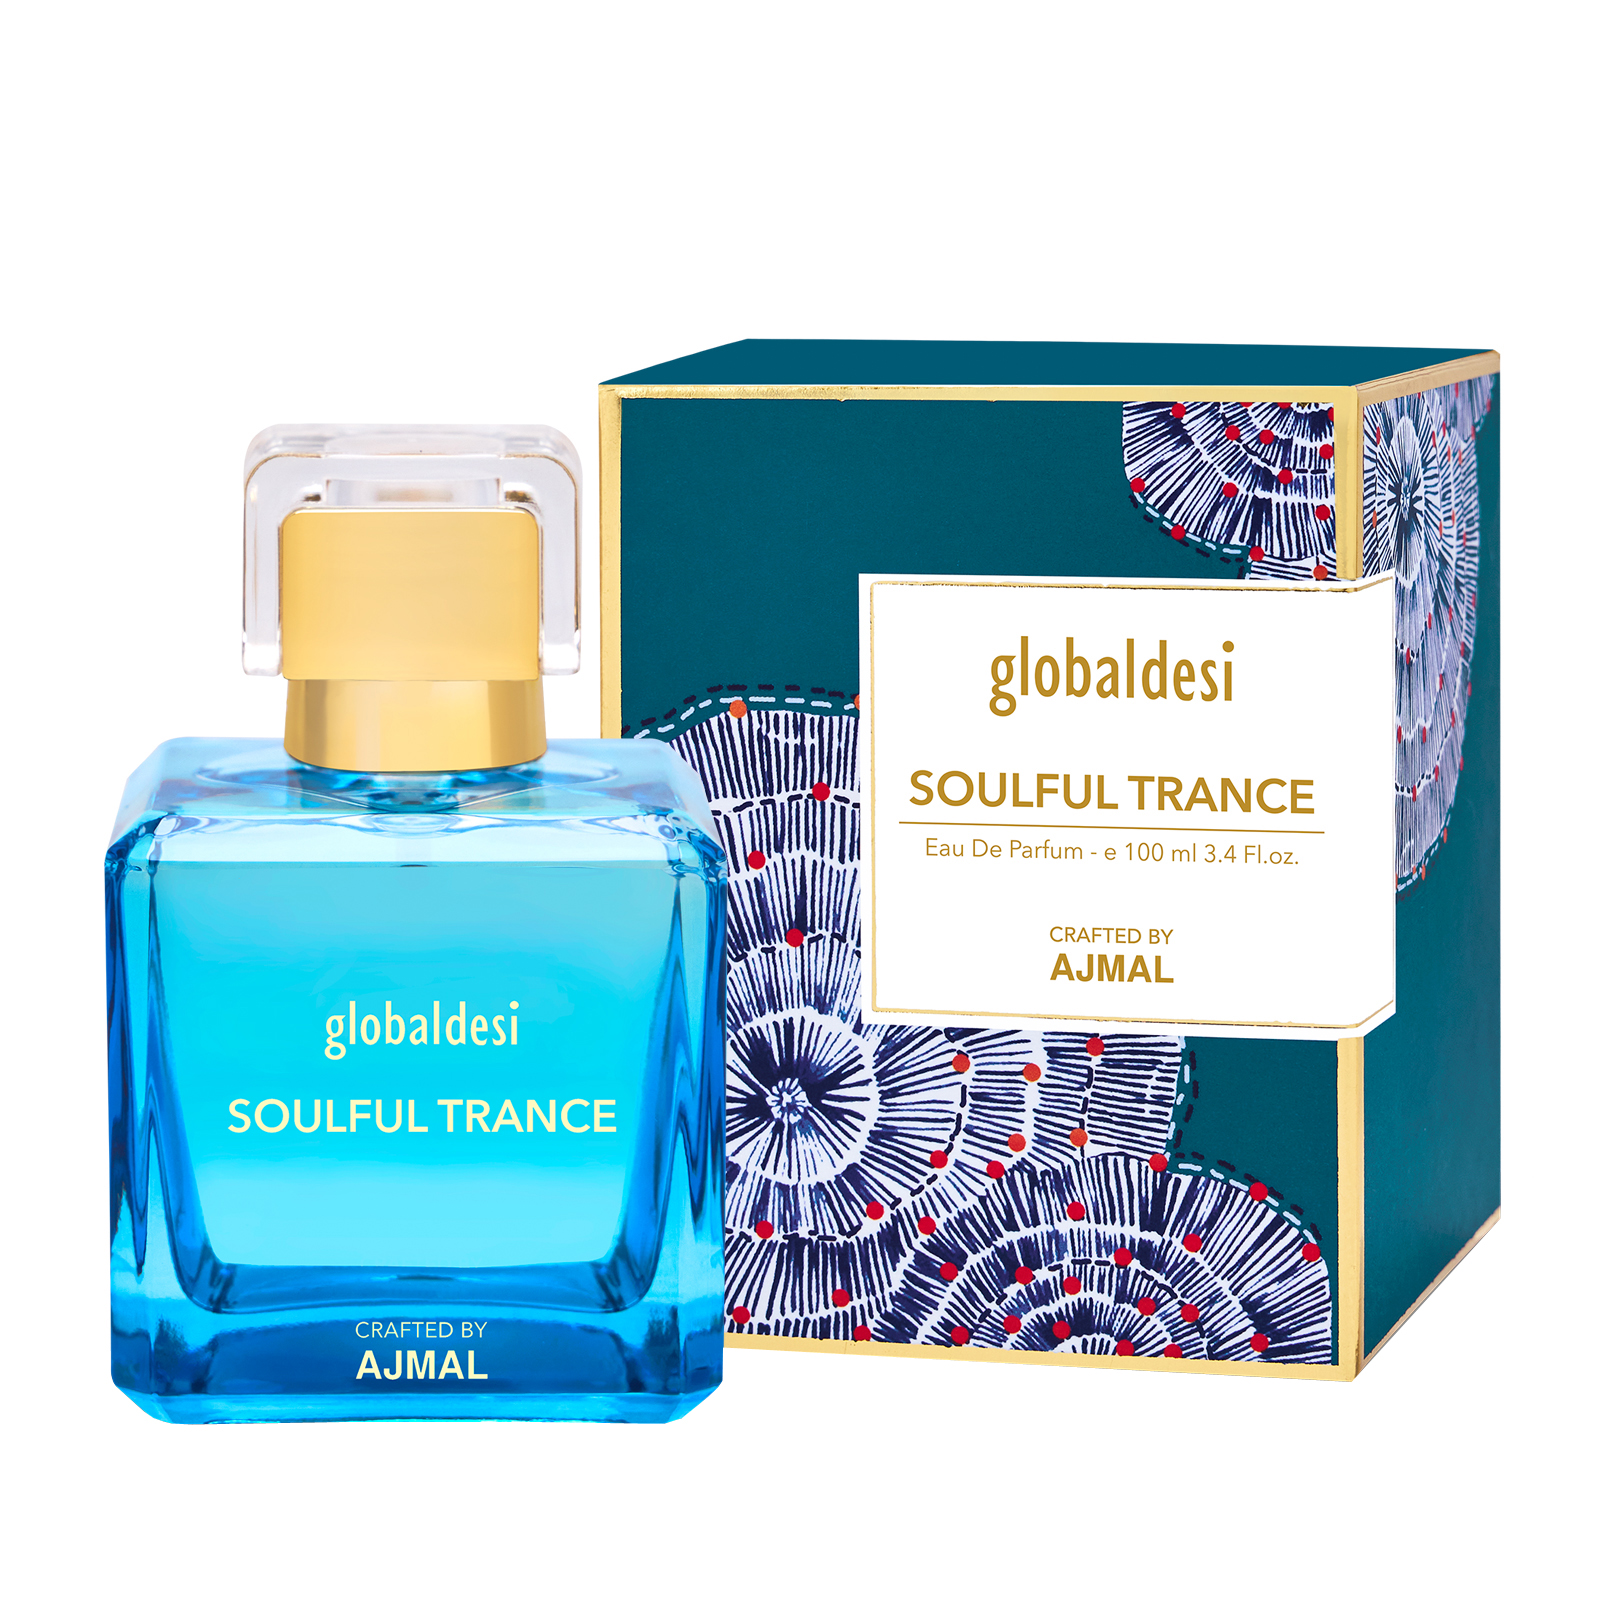 Global Desi Crafted By Ajmal | Global Desi Soulful Trance Eau De Parfum 100ML for Women Crafted by Ajmal